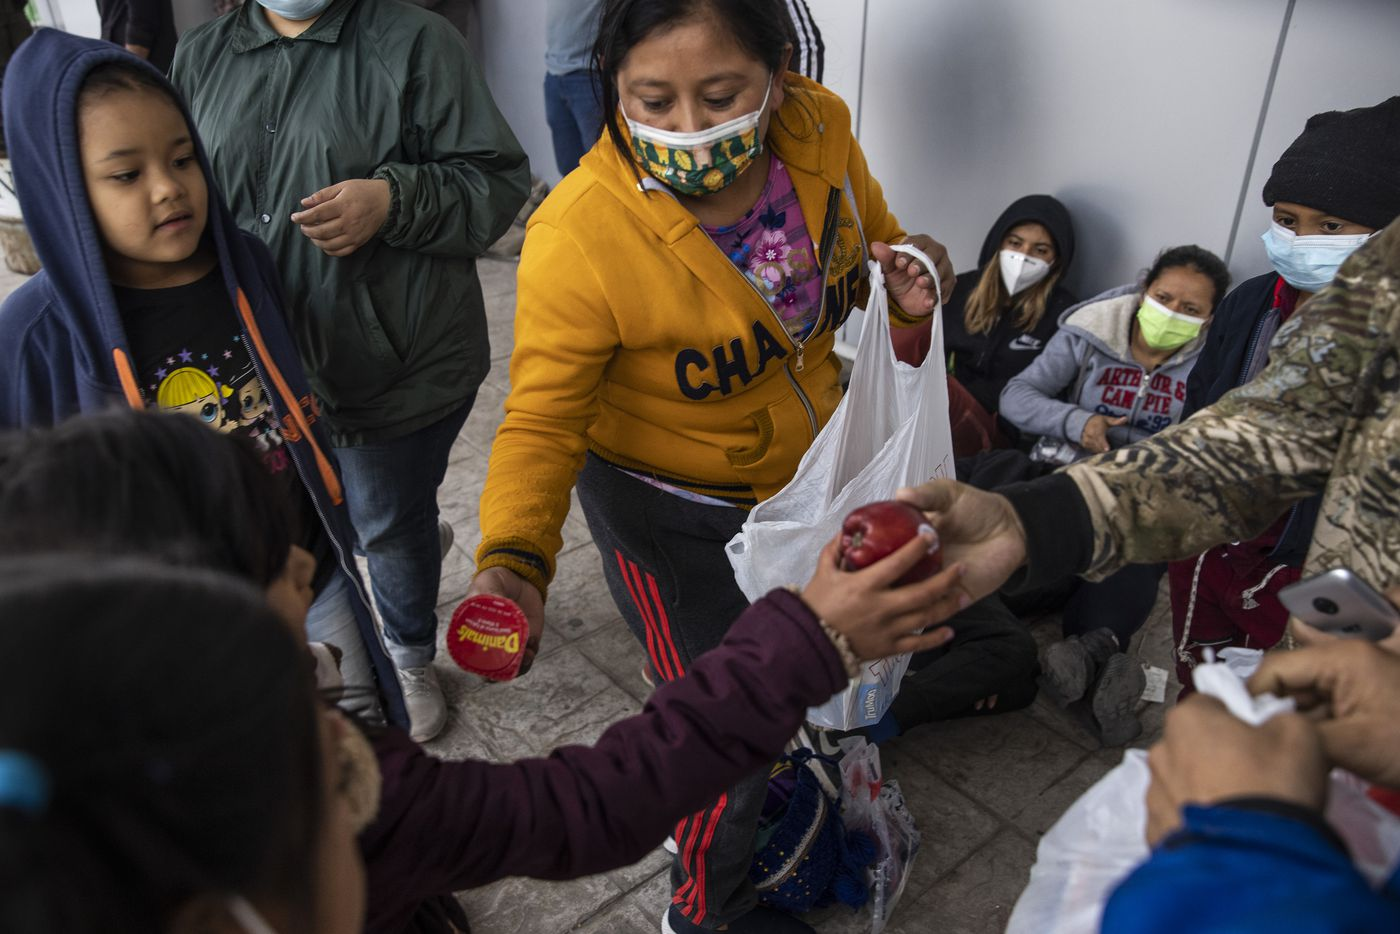 """Isabela Julaj, center, hands out a donated bag food items given to her to share with other migrant families stranded in the plaza near the international bridge leading into Reynosa, in Mexico. Julaj and her two daughters, ages seven and eight, were expelled from the United States overnight under Title 42 — a pandemic-related public order still in place and left over from the Trump administration. The single mother of two said she feels she has no choice but to return to Guatemala. """"There's nothing left for me to do,"""" she said. """"I have very little money left."""""""